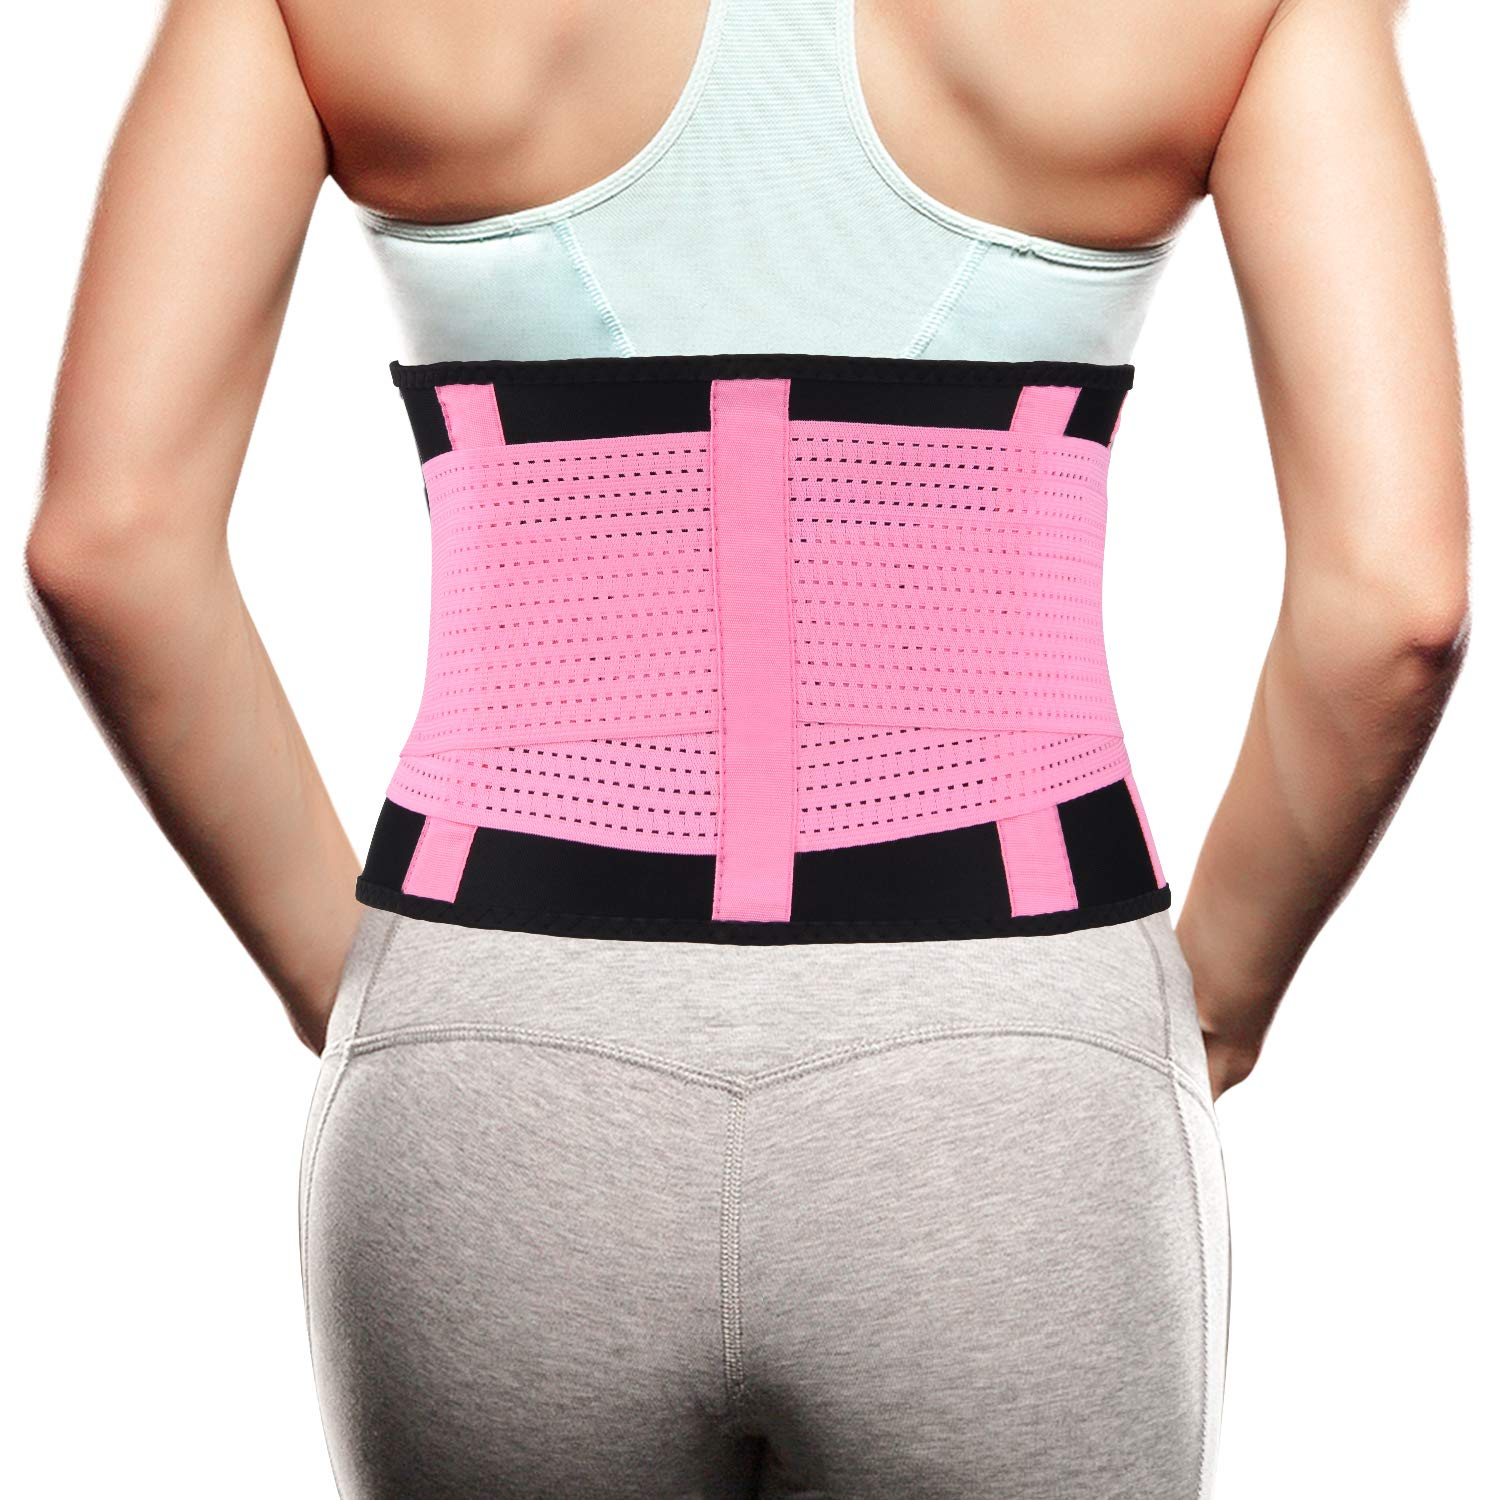 "Back Brace for Women Men - Lower Lumbar Back Support Belt for Pain Relief - Waist Trimmer Belt Body Shaper-Weight Lifting Back Stretcher - Adjustable and Breathable Posture Corrector Pink L/(33""-37"")"